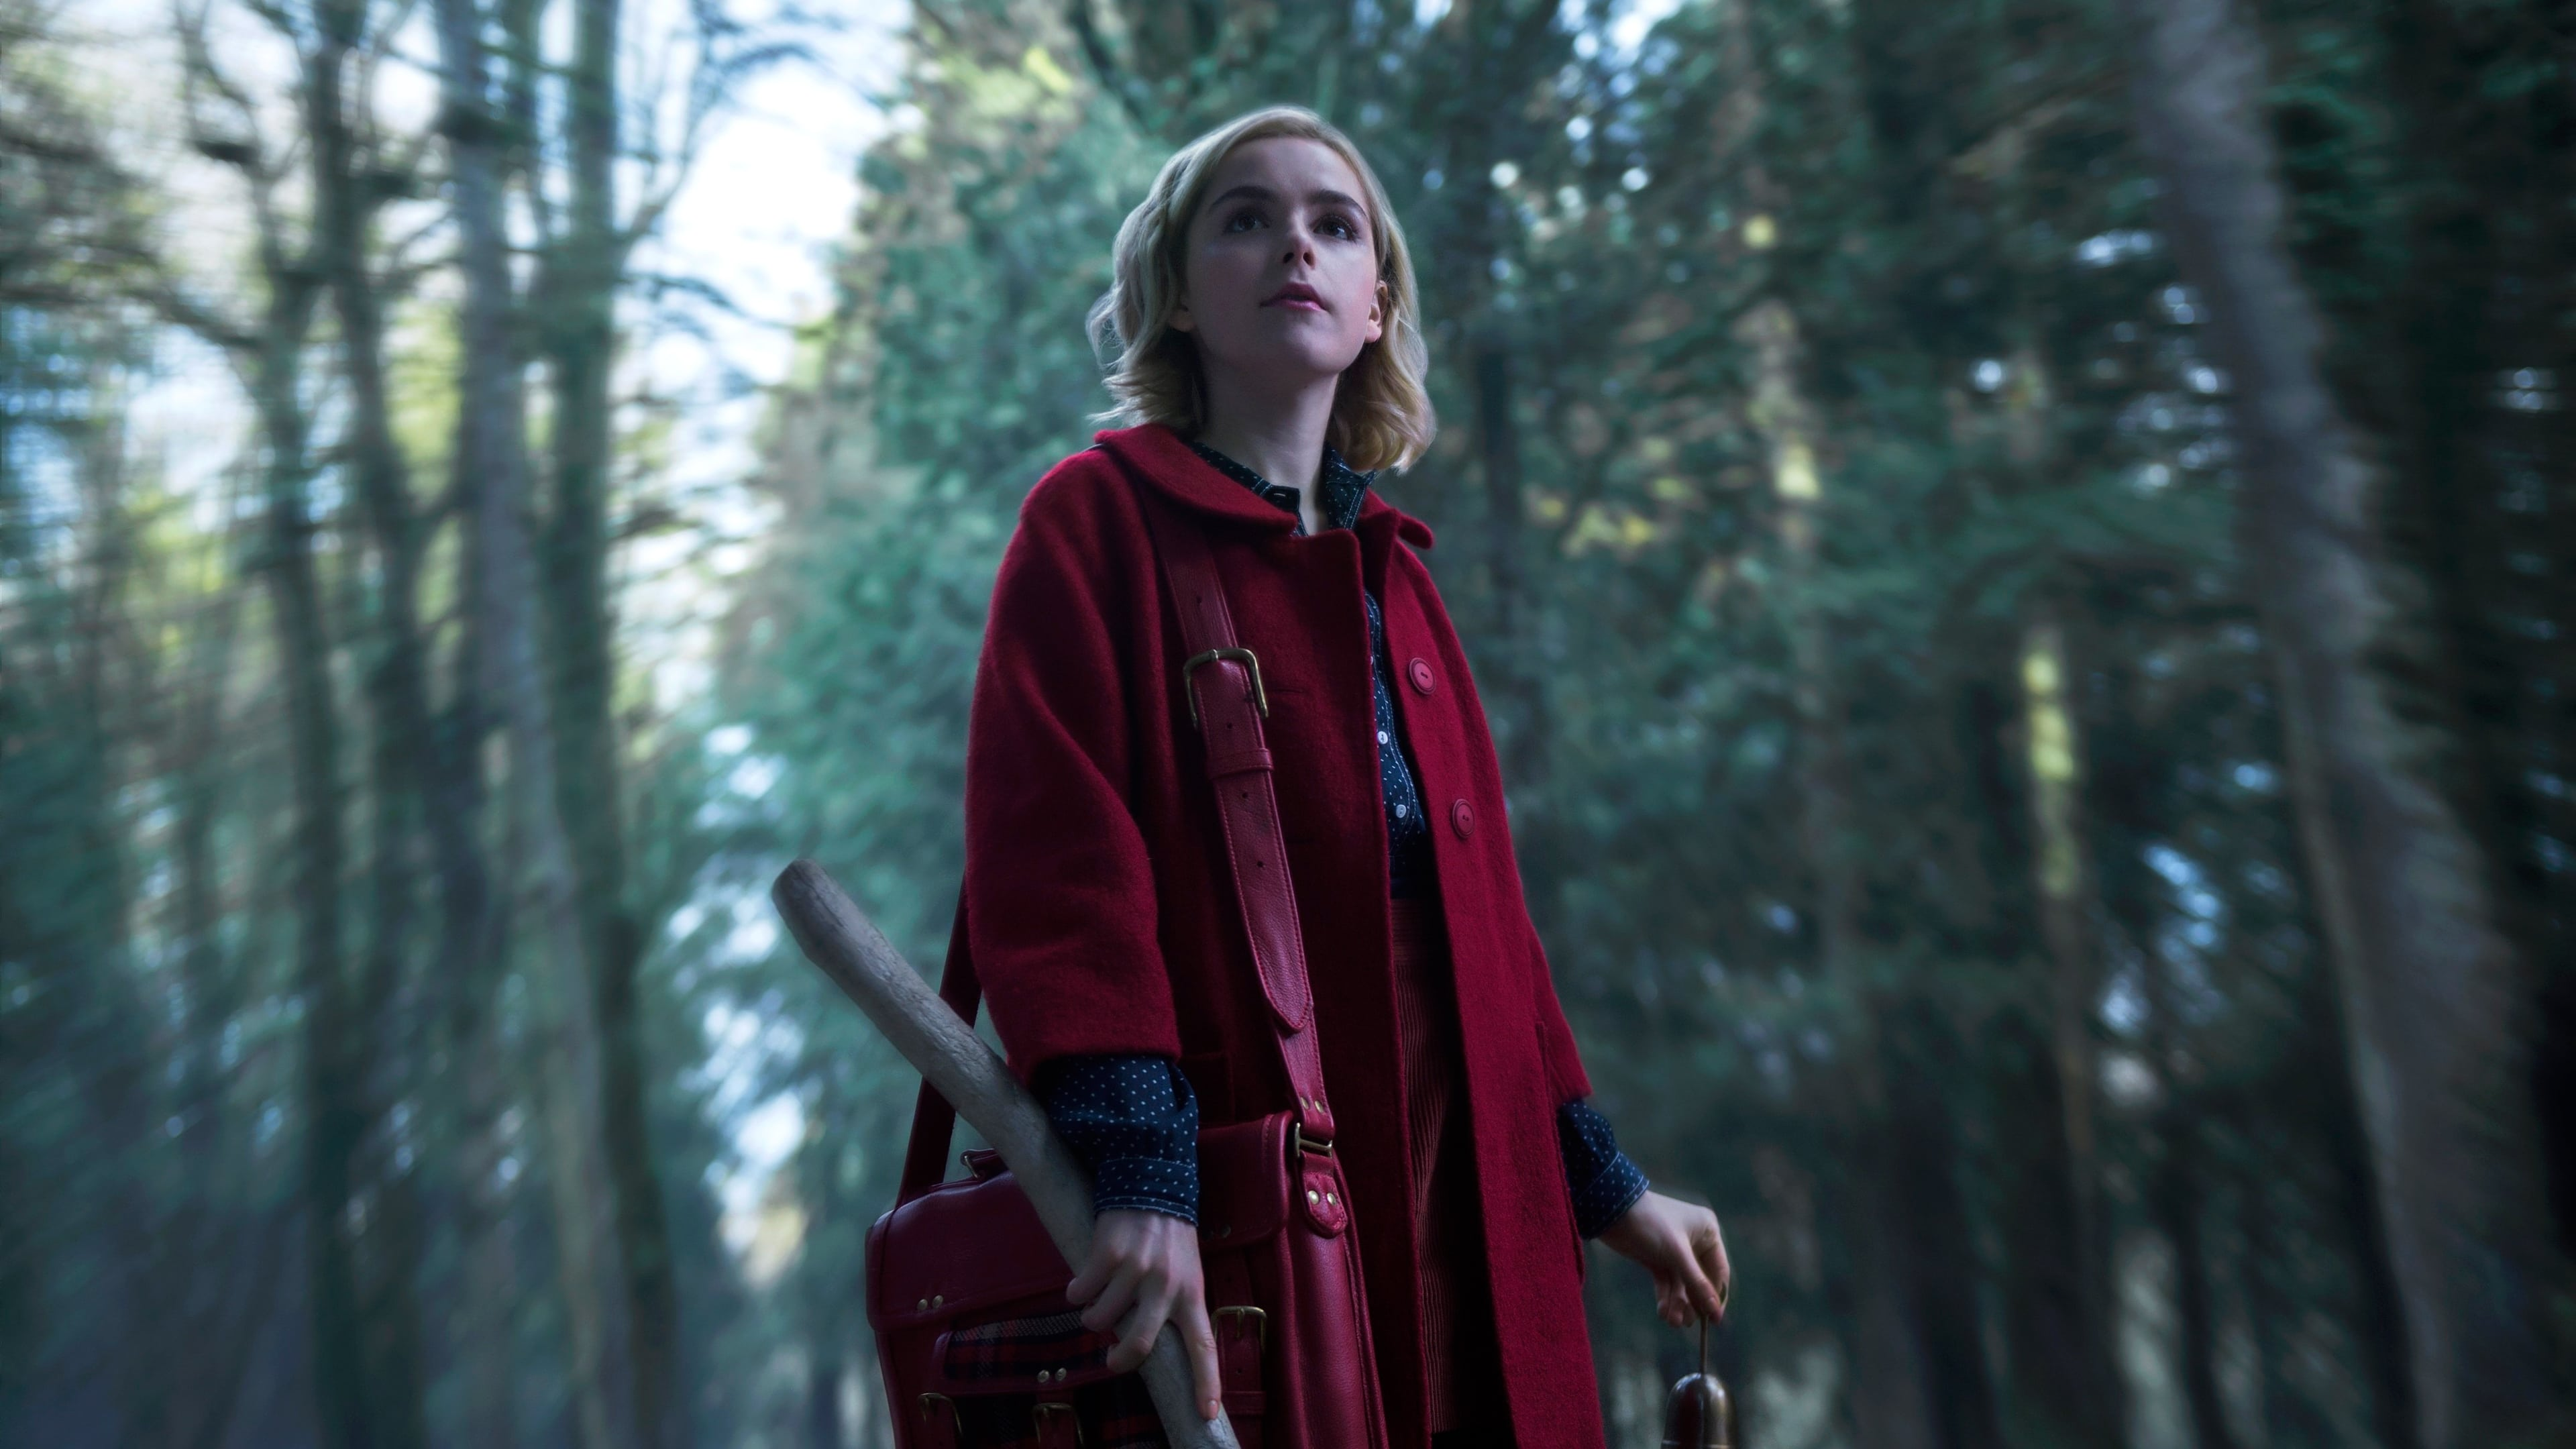 Chilling Adventures of Sabrina Season 1 Episode 6 : Chapter Six: An Exorcism in Greendale